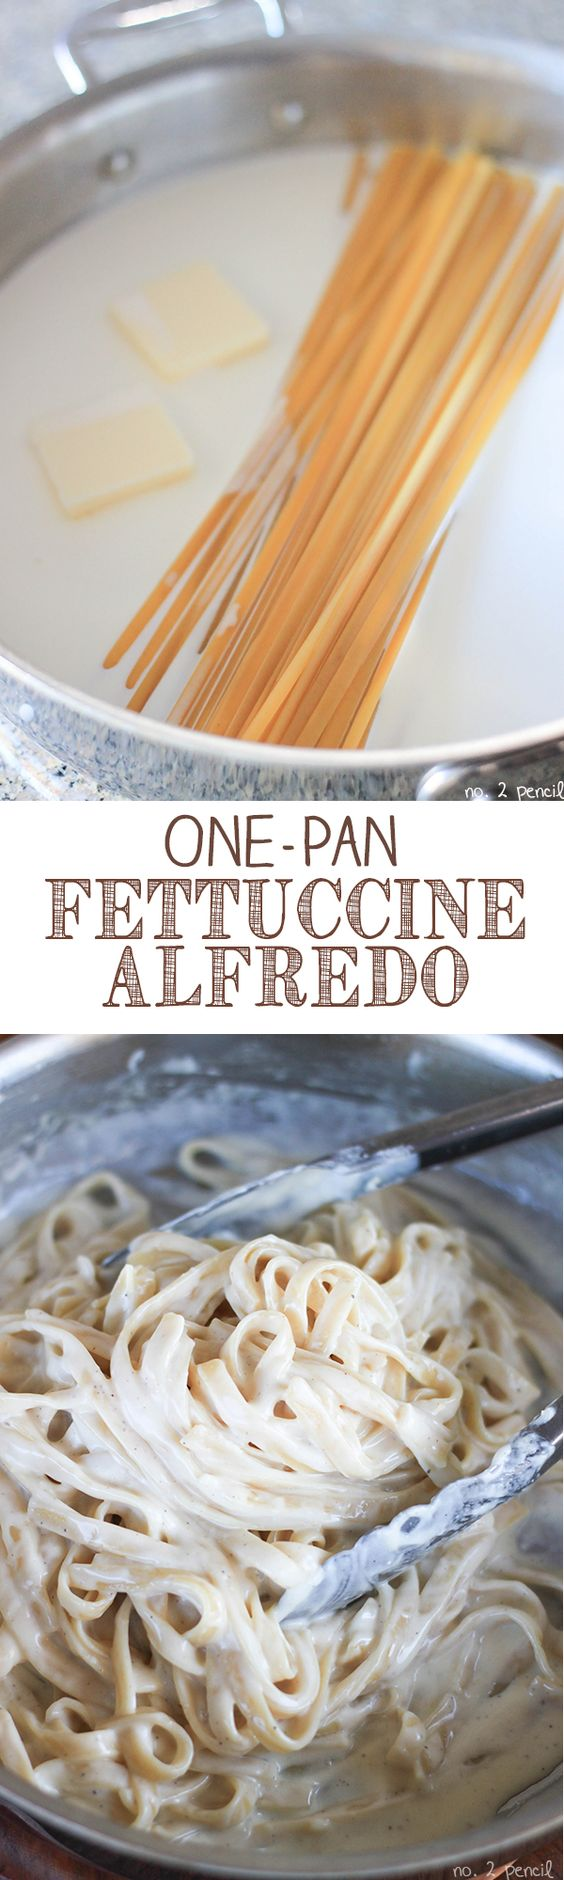 Easy One Pan Fettuccine Alfredo--Even the pasta cooks in the same pan!